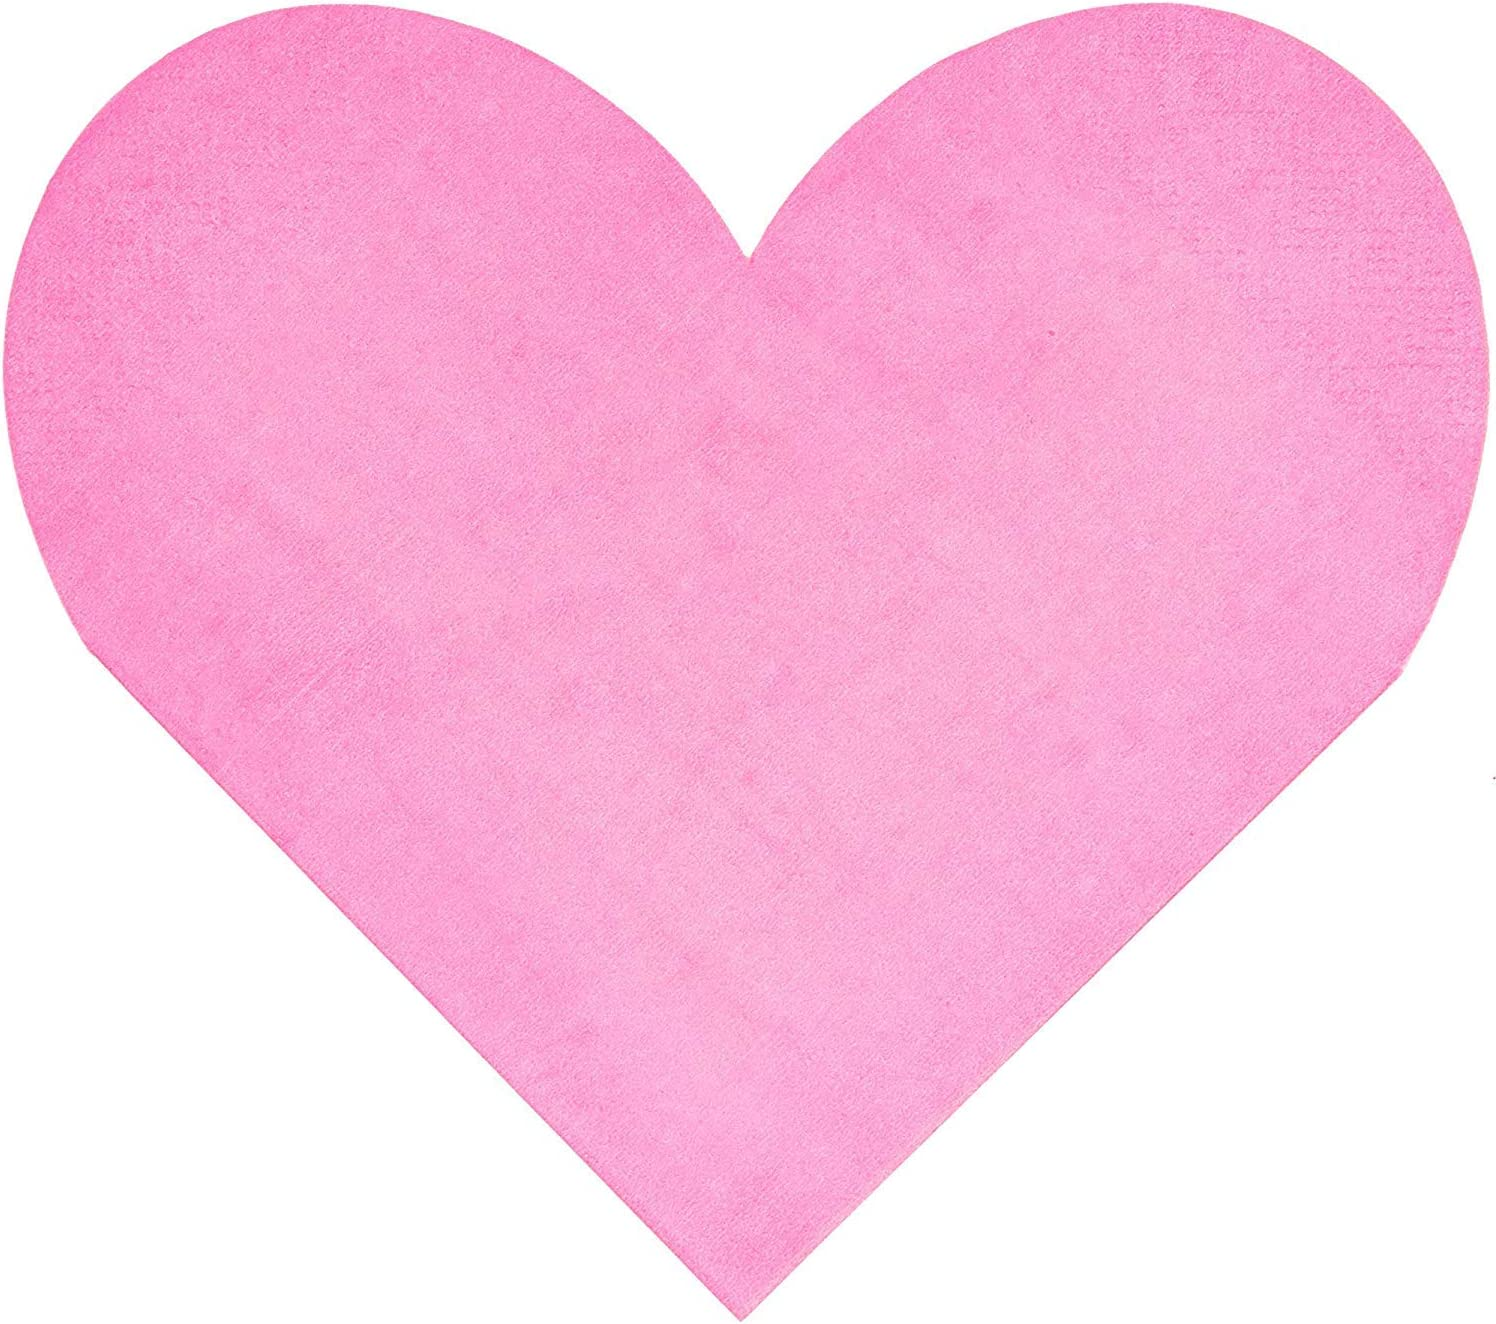 Blue Panda 50 Pack Pink Heart Die-cut Napkins 3 Ply